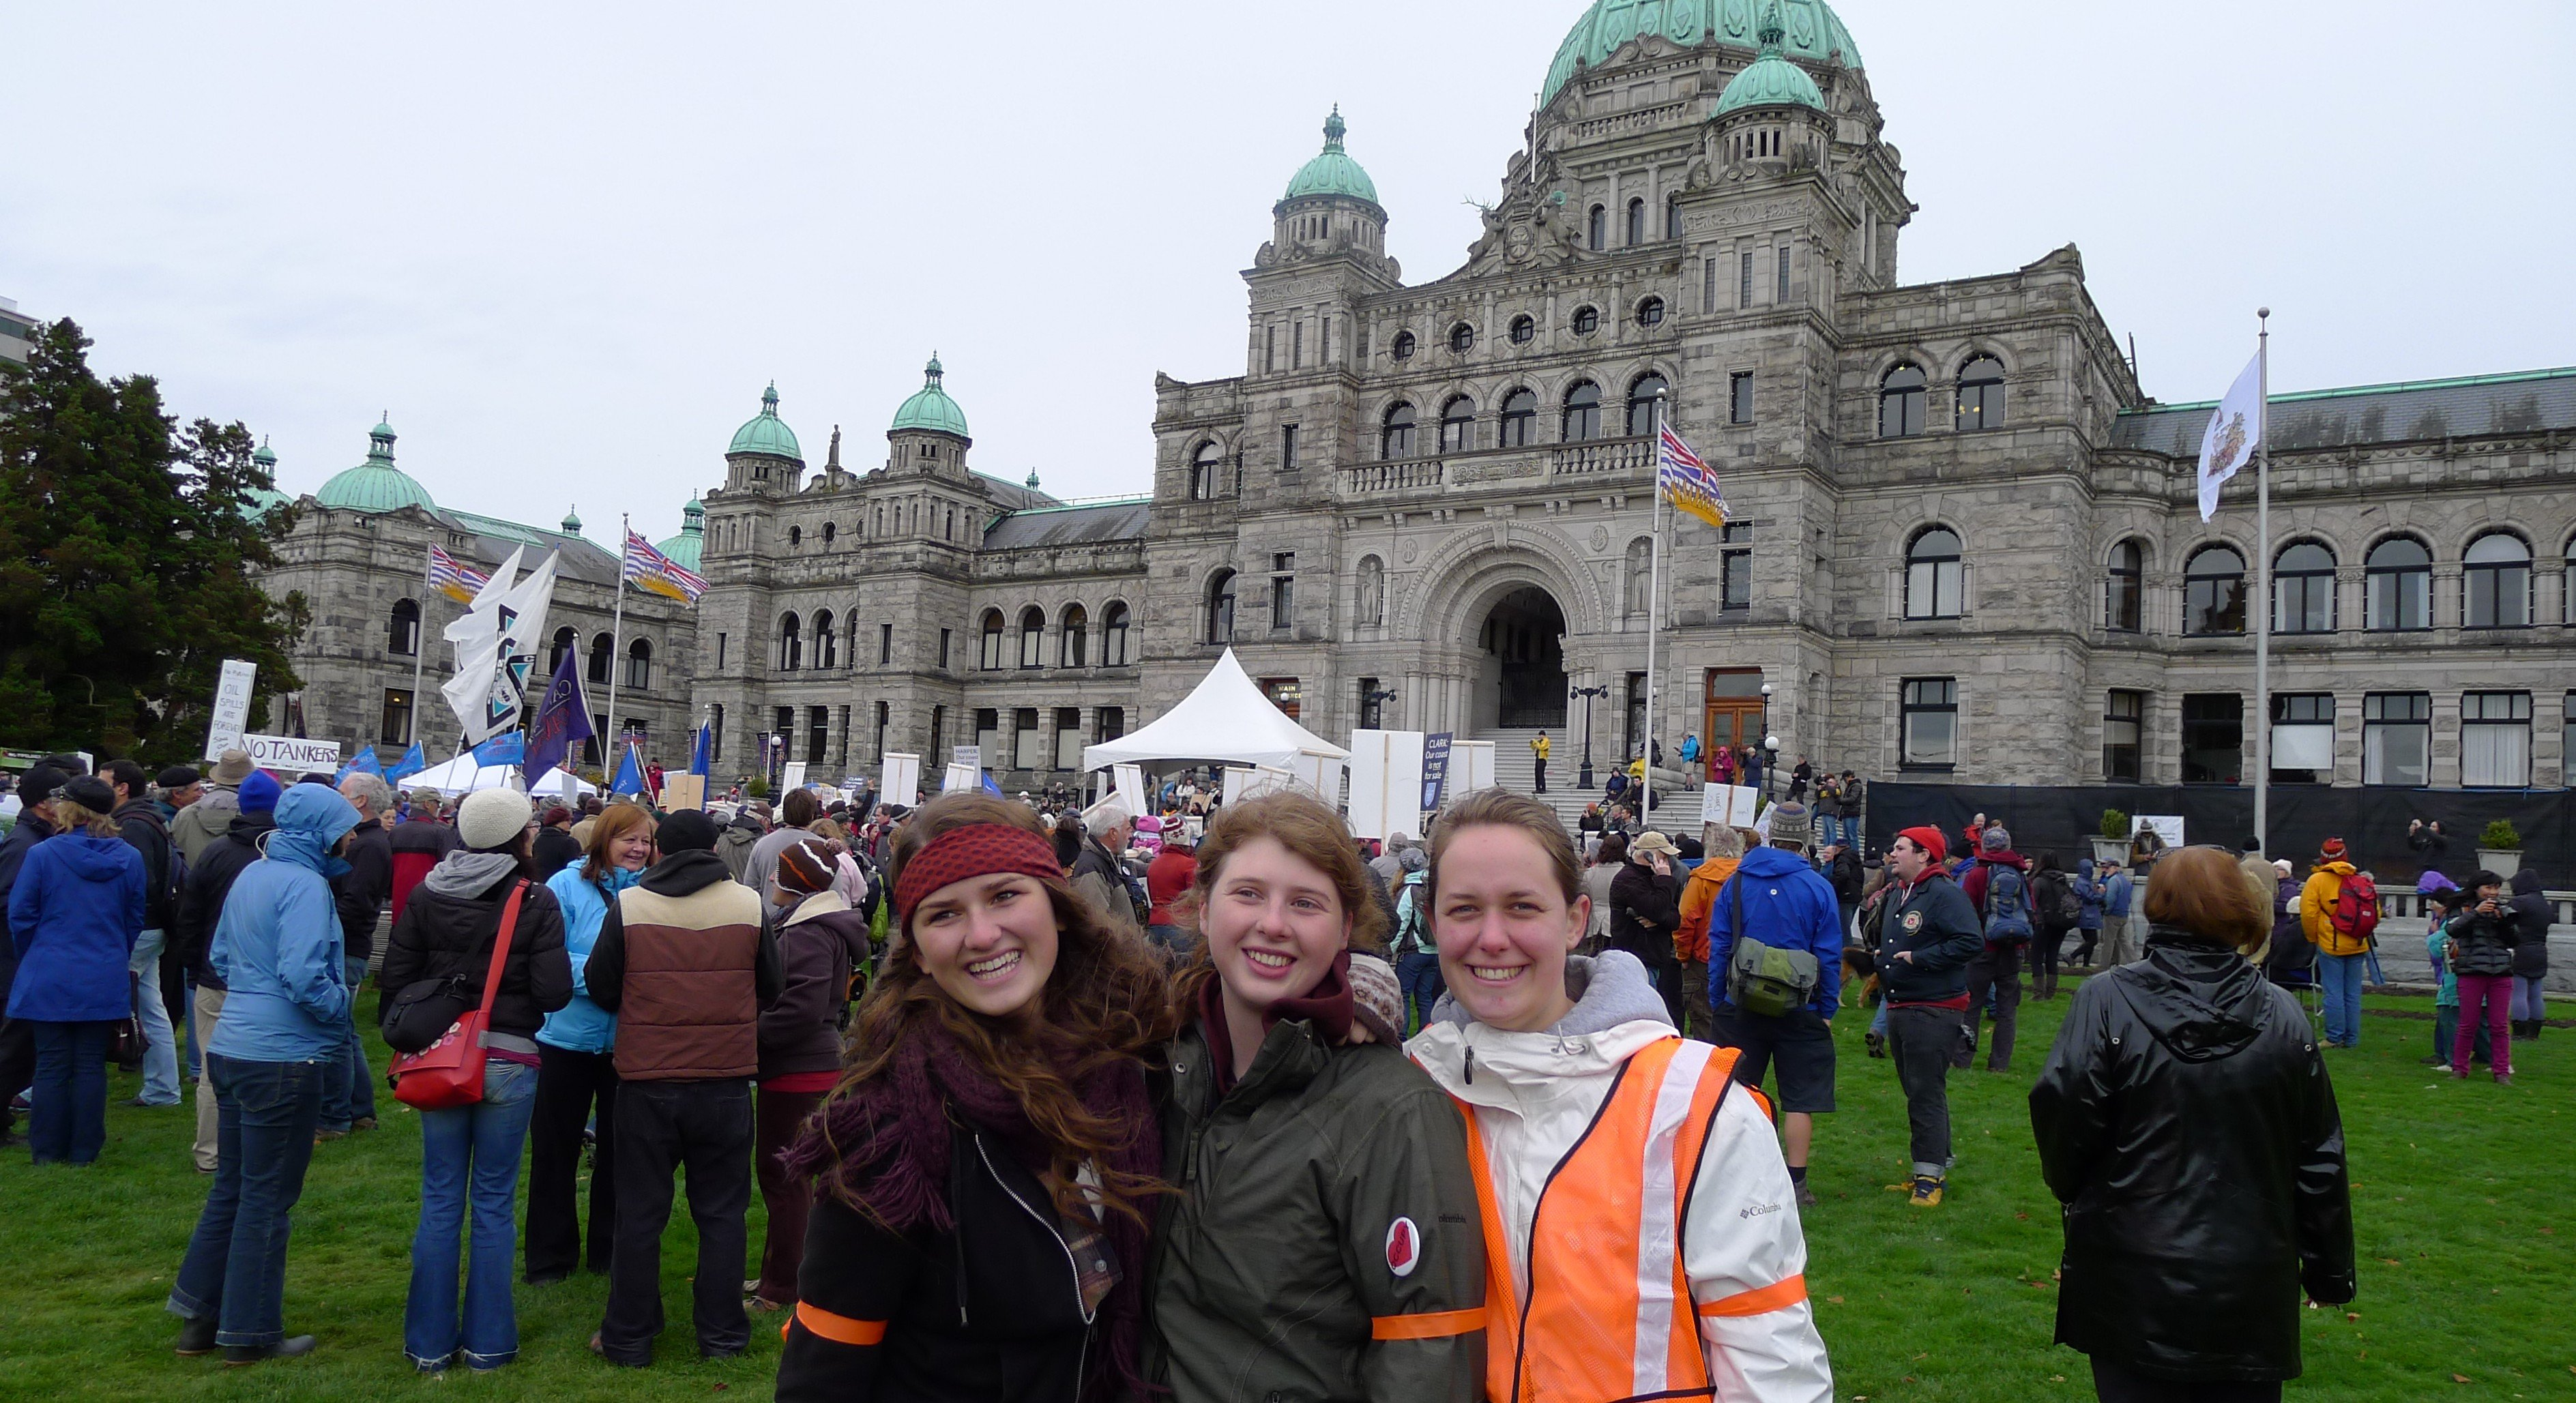 Members of the Cascade Climate Network help out with marshal roles at the Defend Our Coast action in Victoria, B.C. on October 22nd, 2012